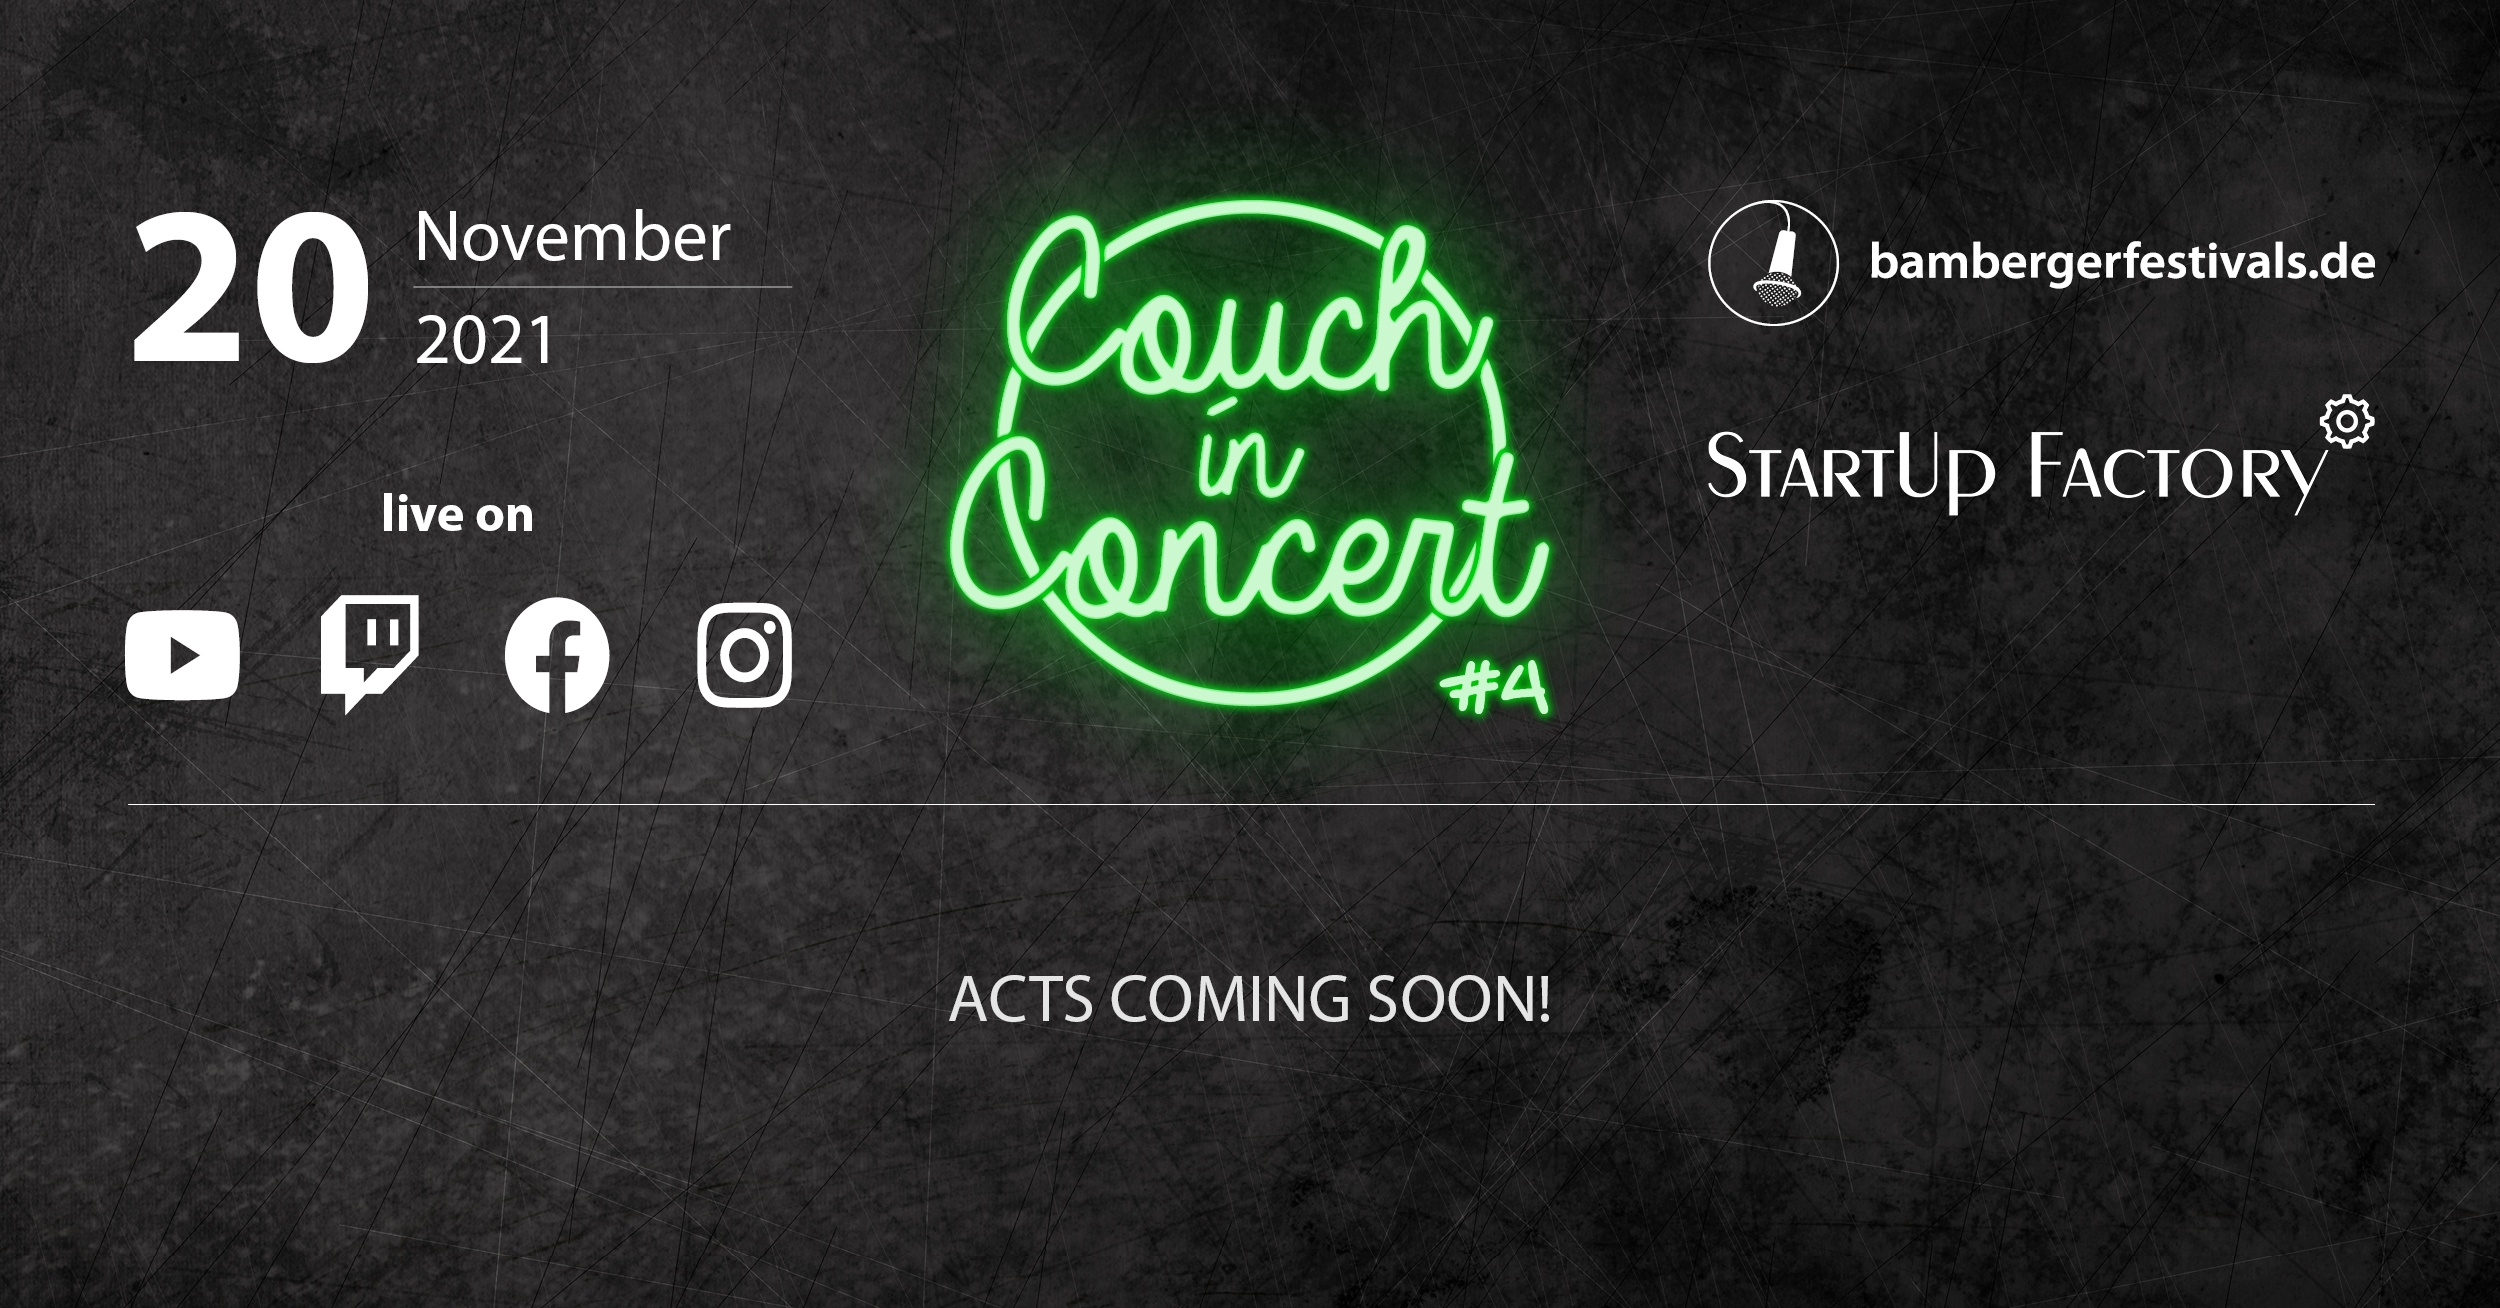 Couch in Concert #4